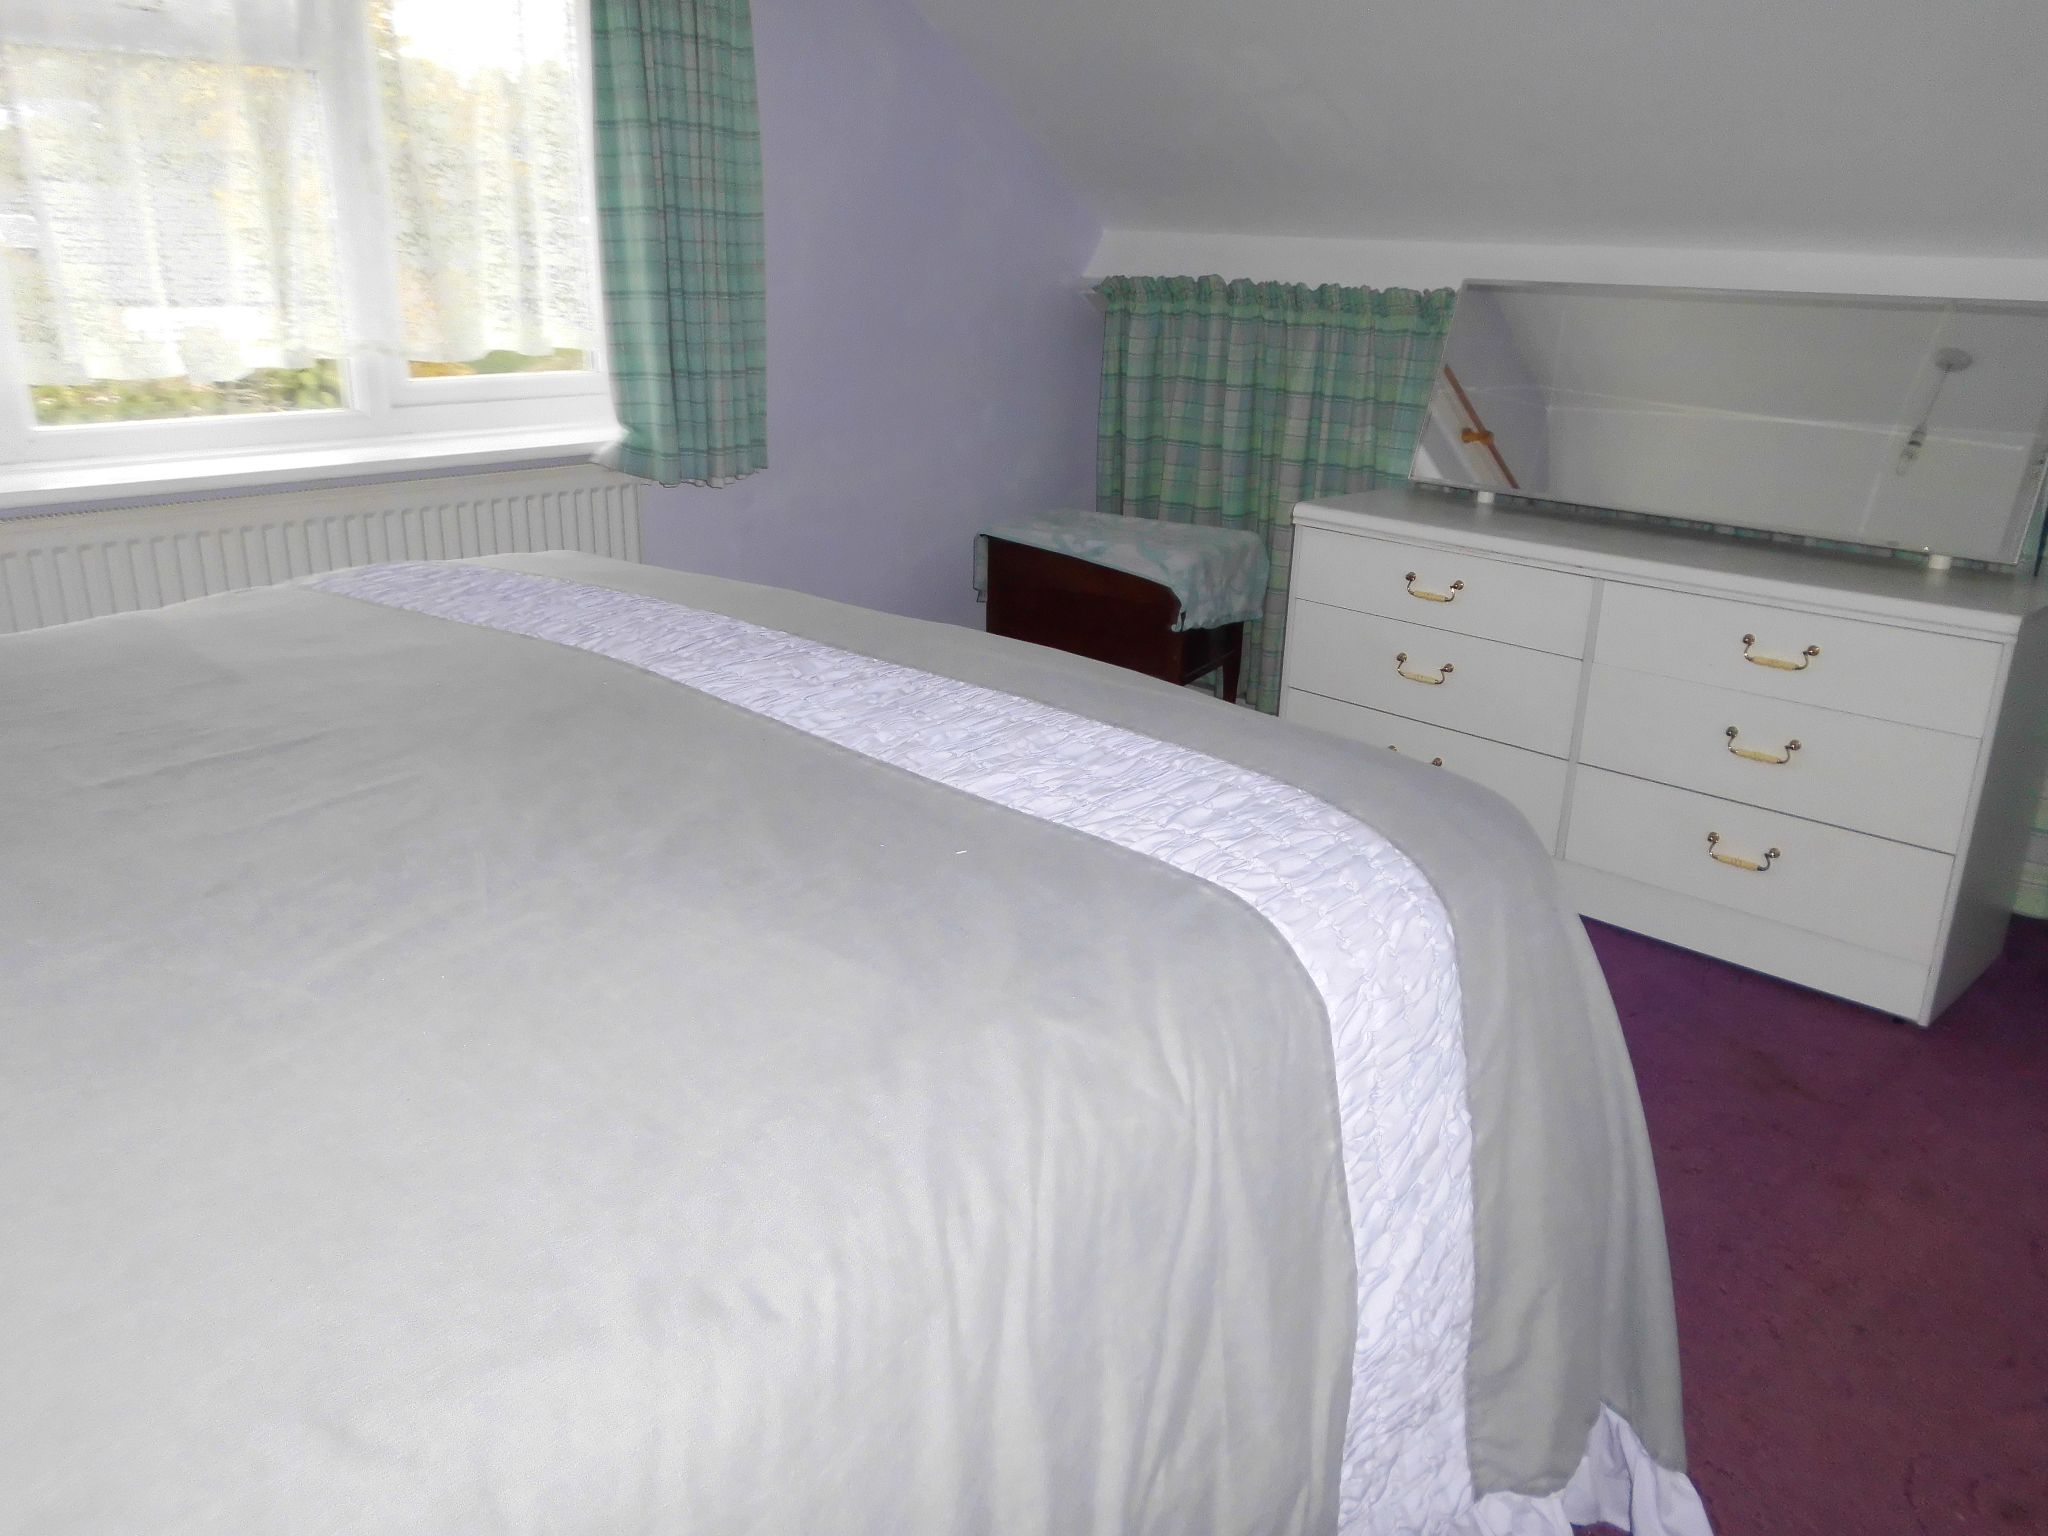 4 bedroom detached bungalow SSTC in Leicester - Photograph 10.